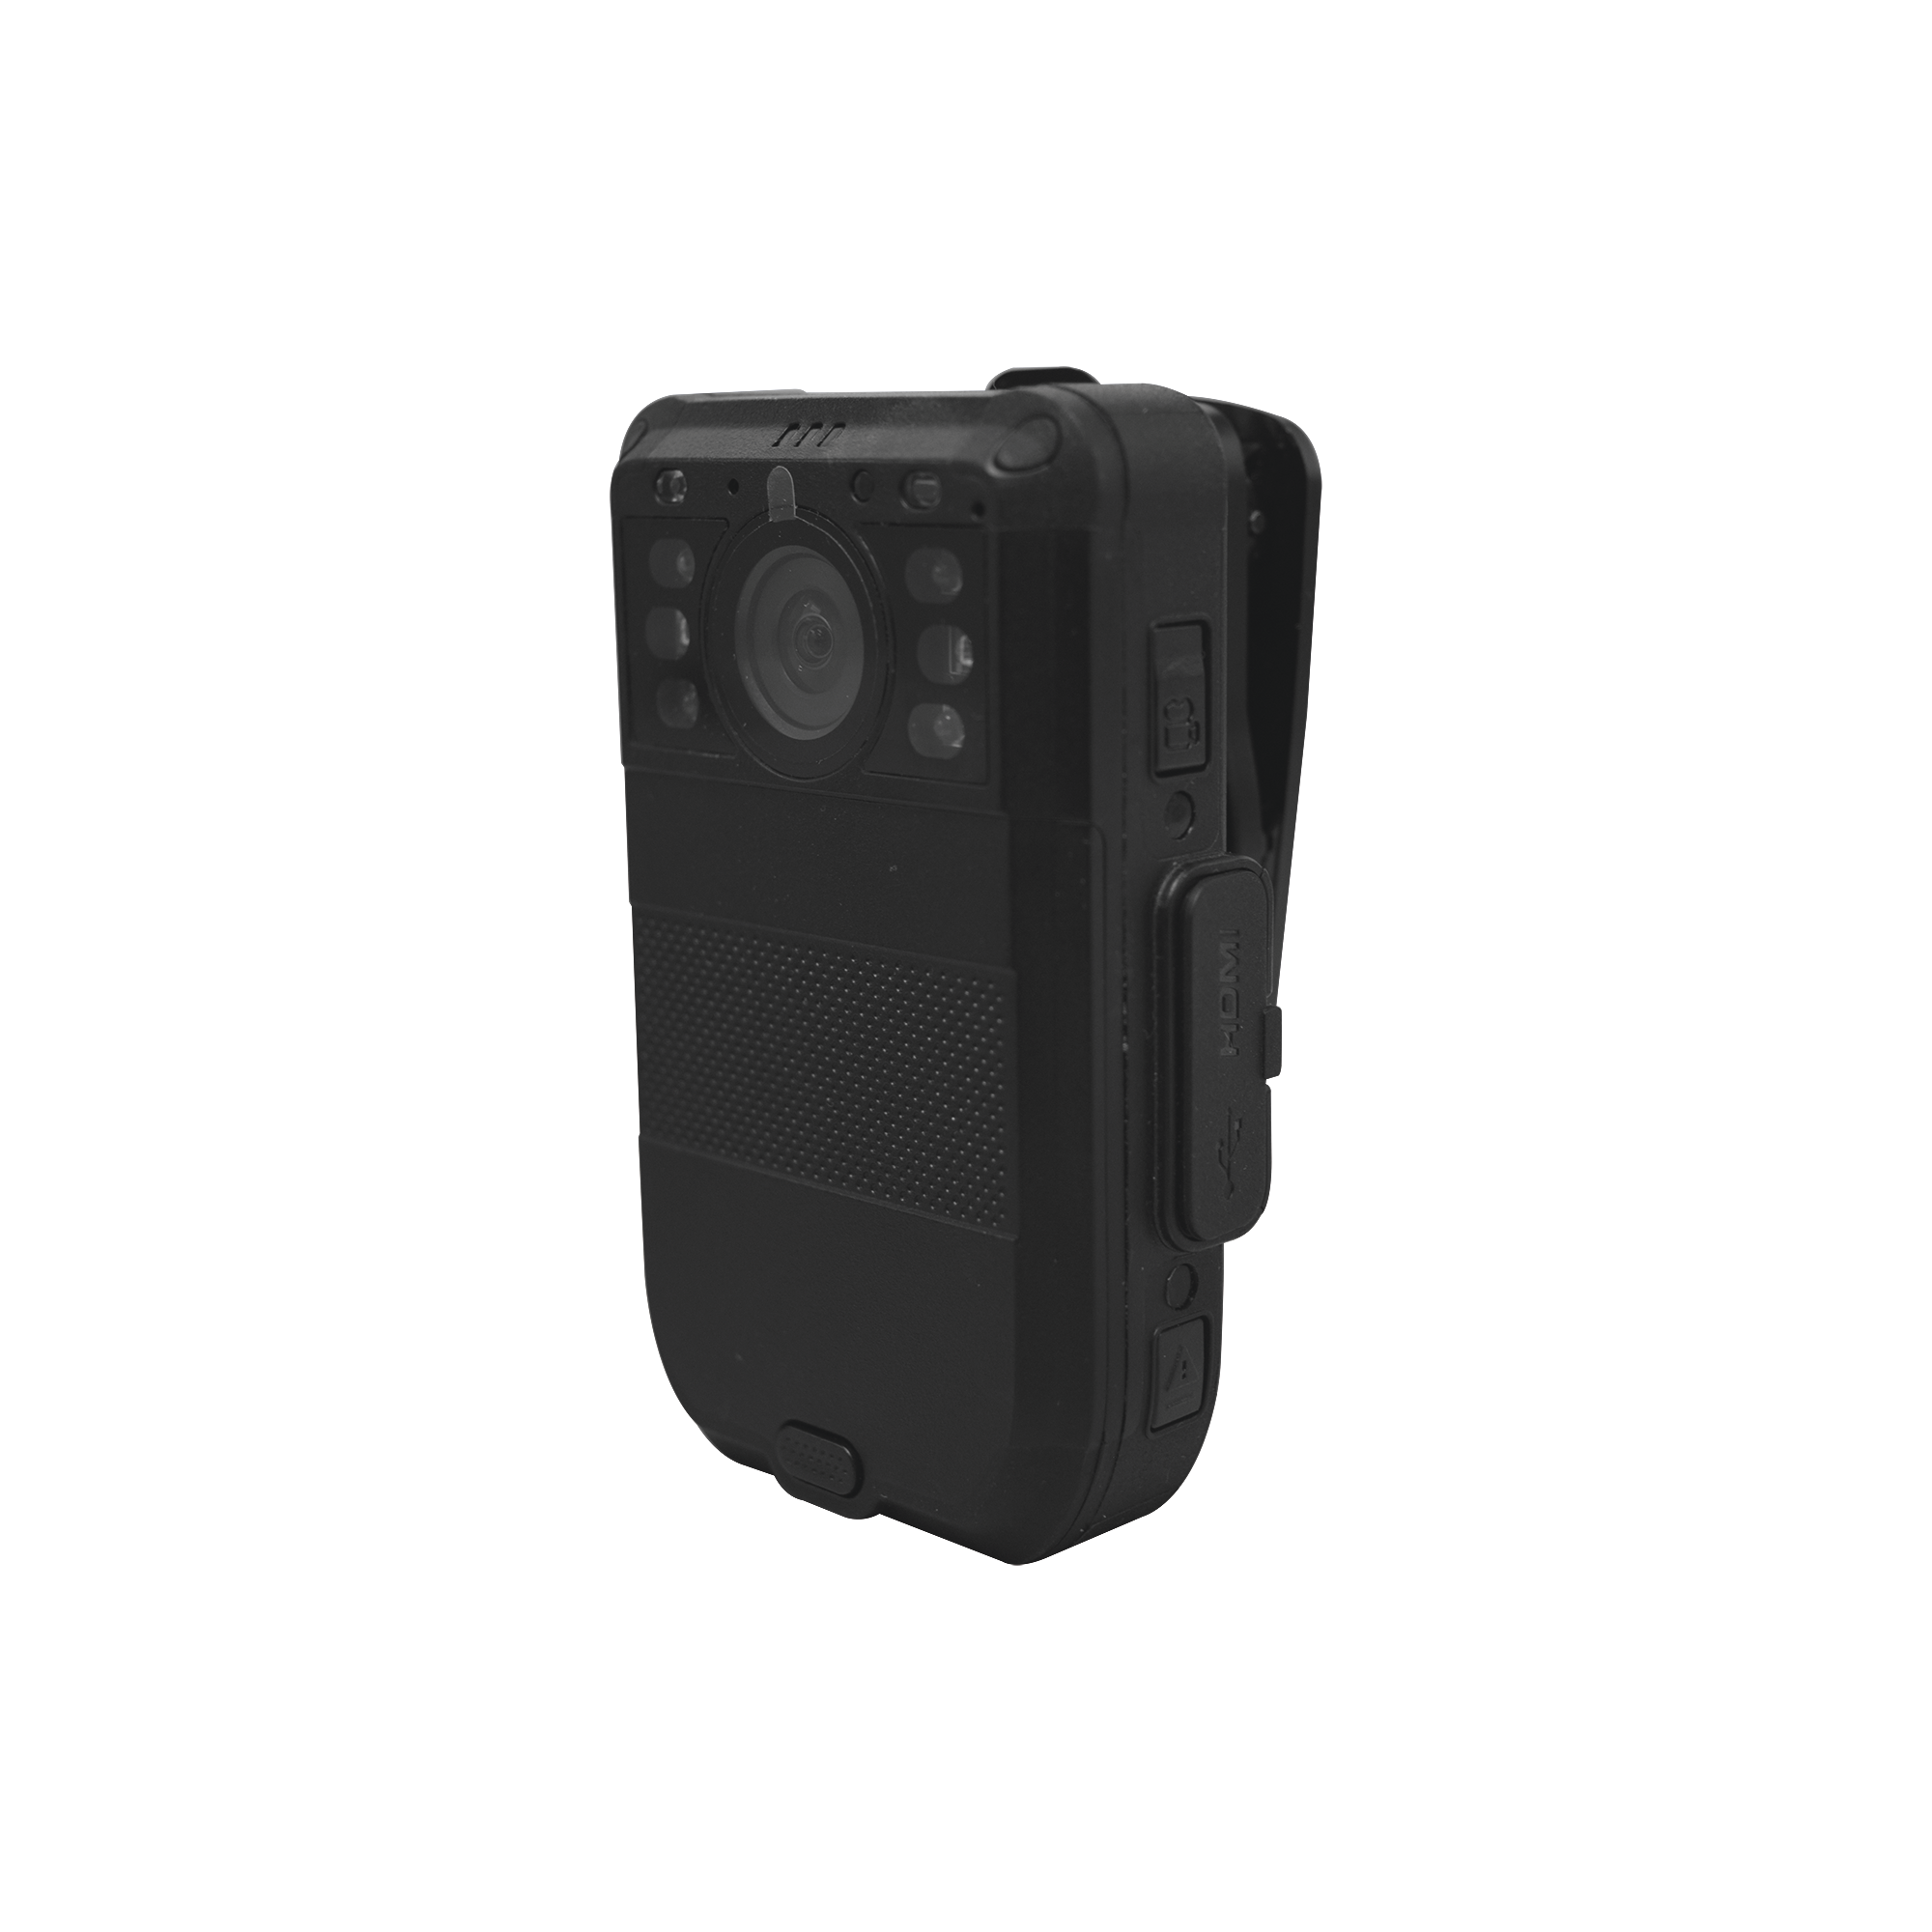 Body Camera para Seguridad, Video Full HD, GPS Interconstruido, Conexion 4G-LTE, WiFi, Bluetooth, Sistema basado en Android